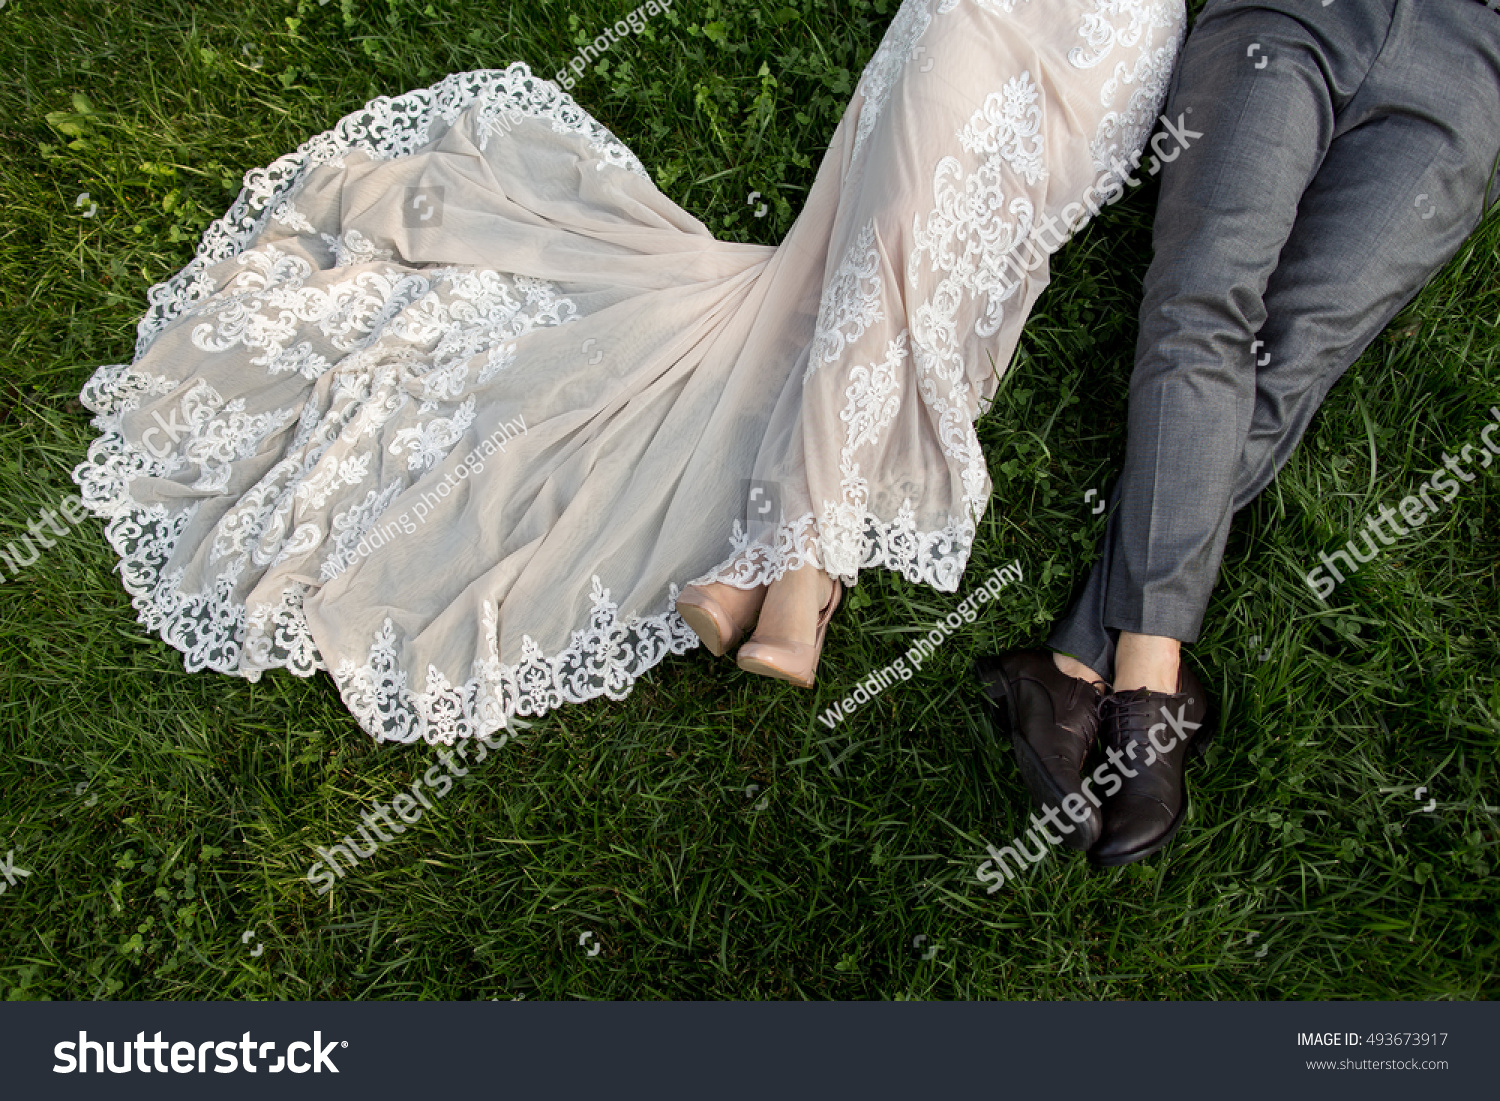 Stock Photo Wedding Bridal Dress And Groom Suit Elegant After Ceremony Such